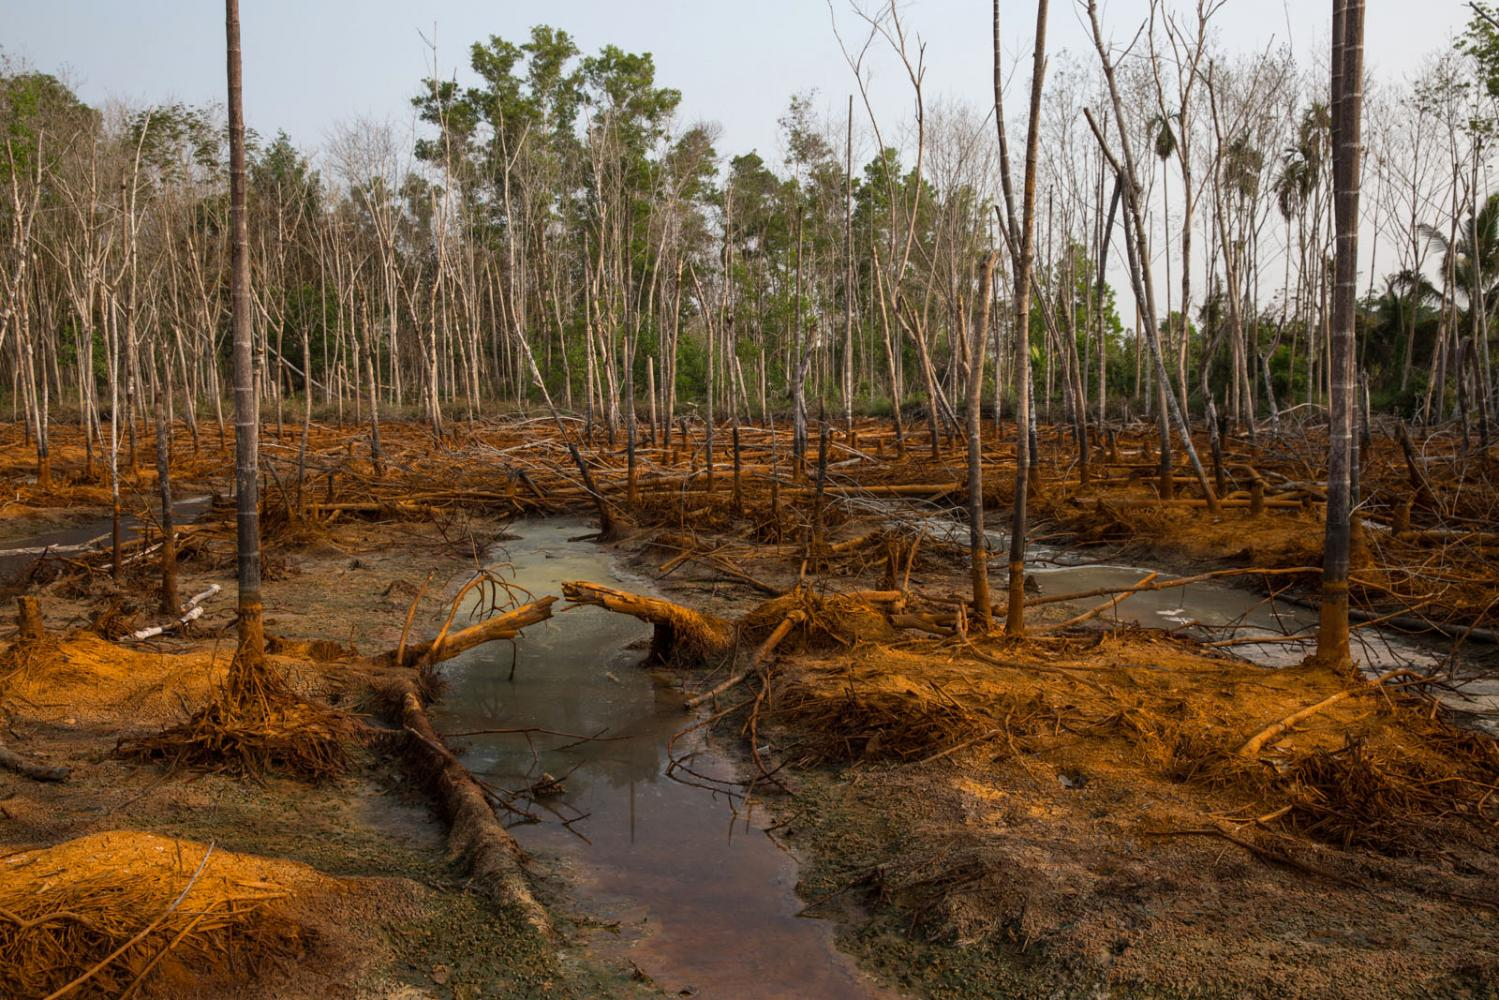 An area of heavily contaminated farmland polluted with unknown chemicals after a nearby recycling factory's storage tank broke. Rayong, Thailand.